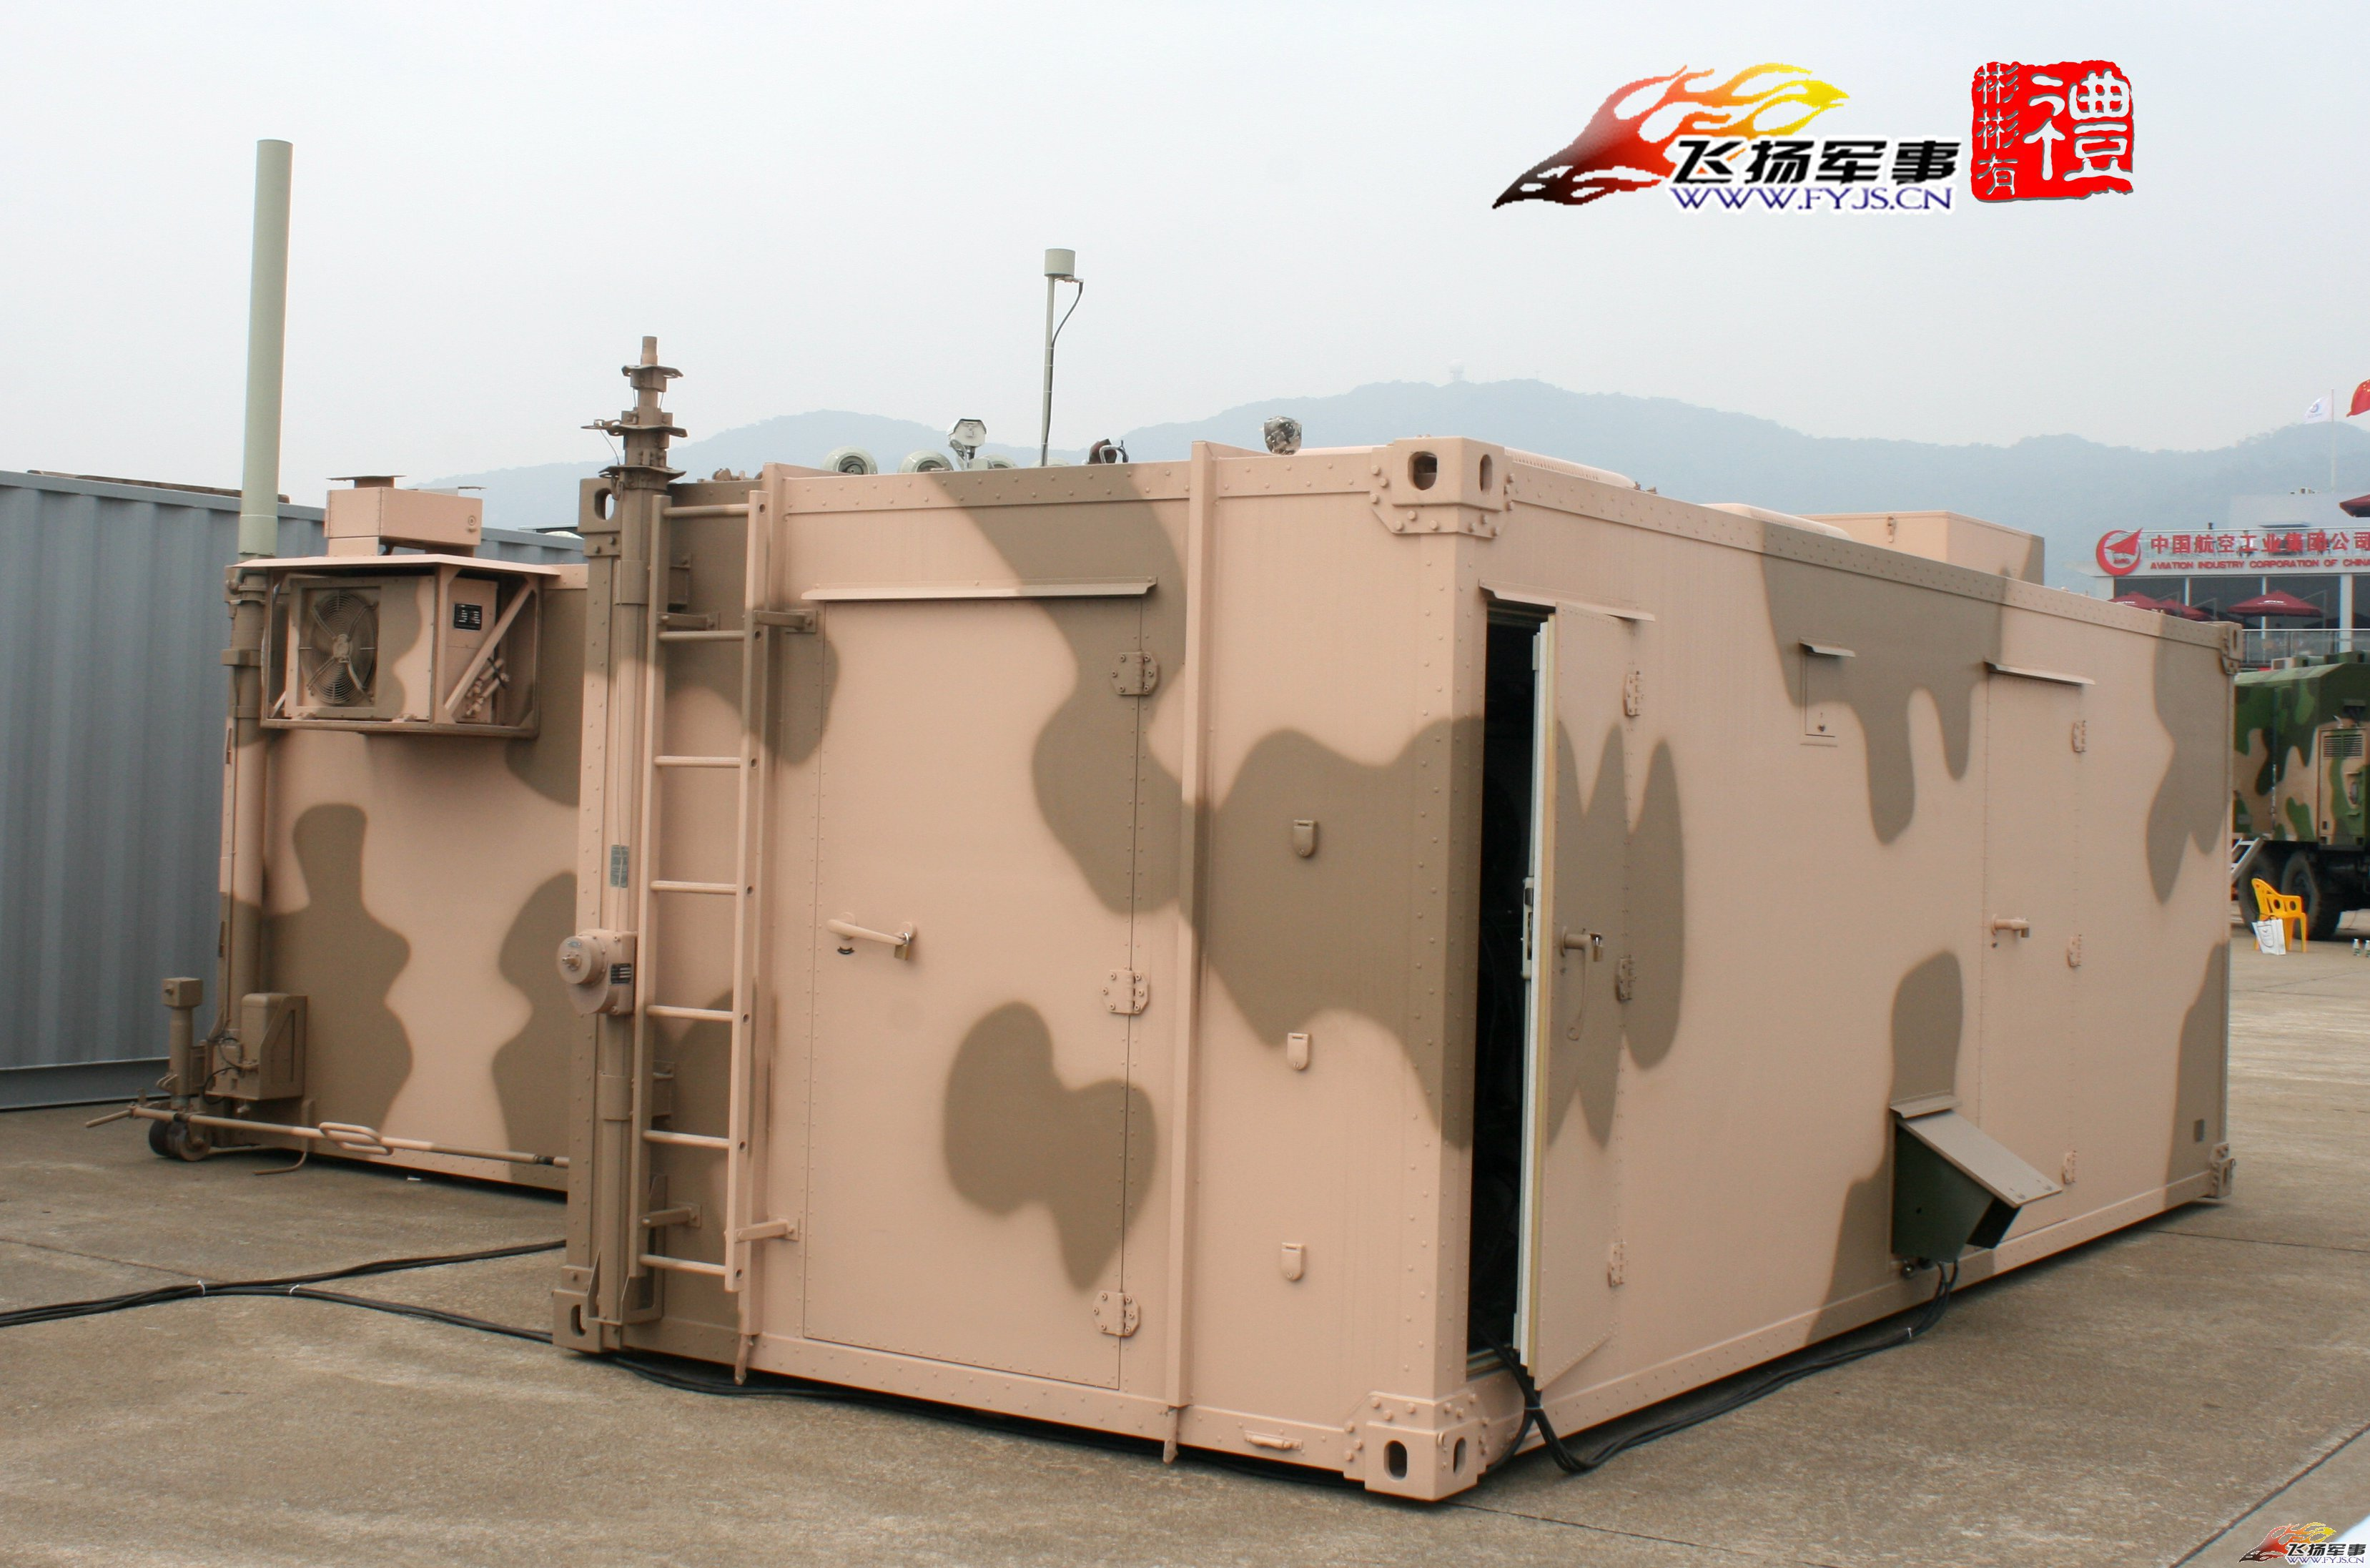 wing-loong I_07.jpg